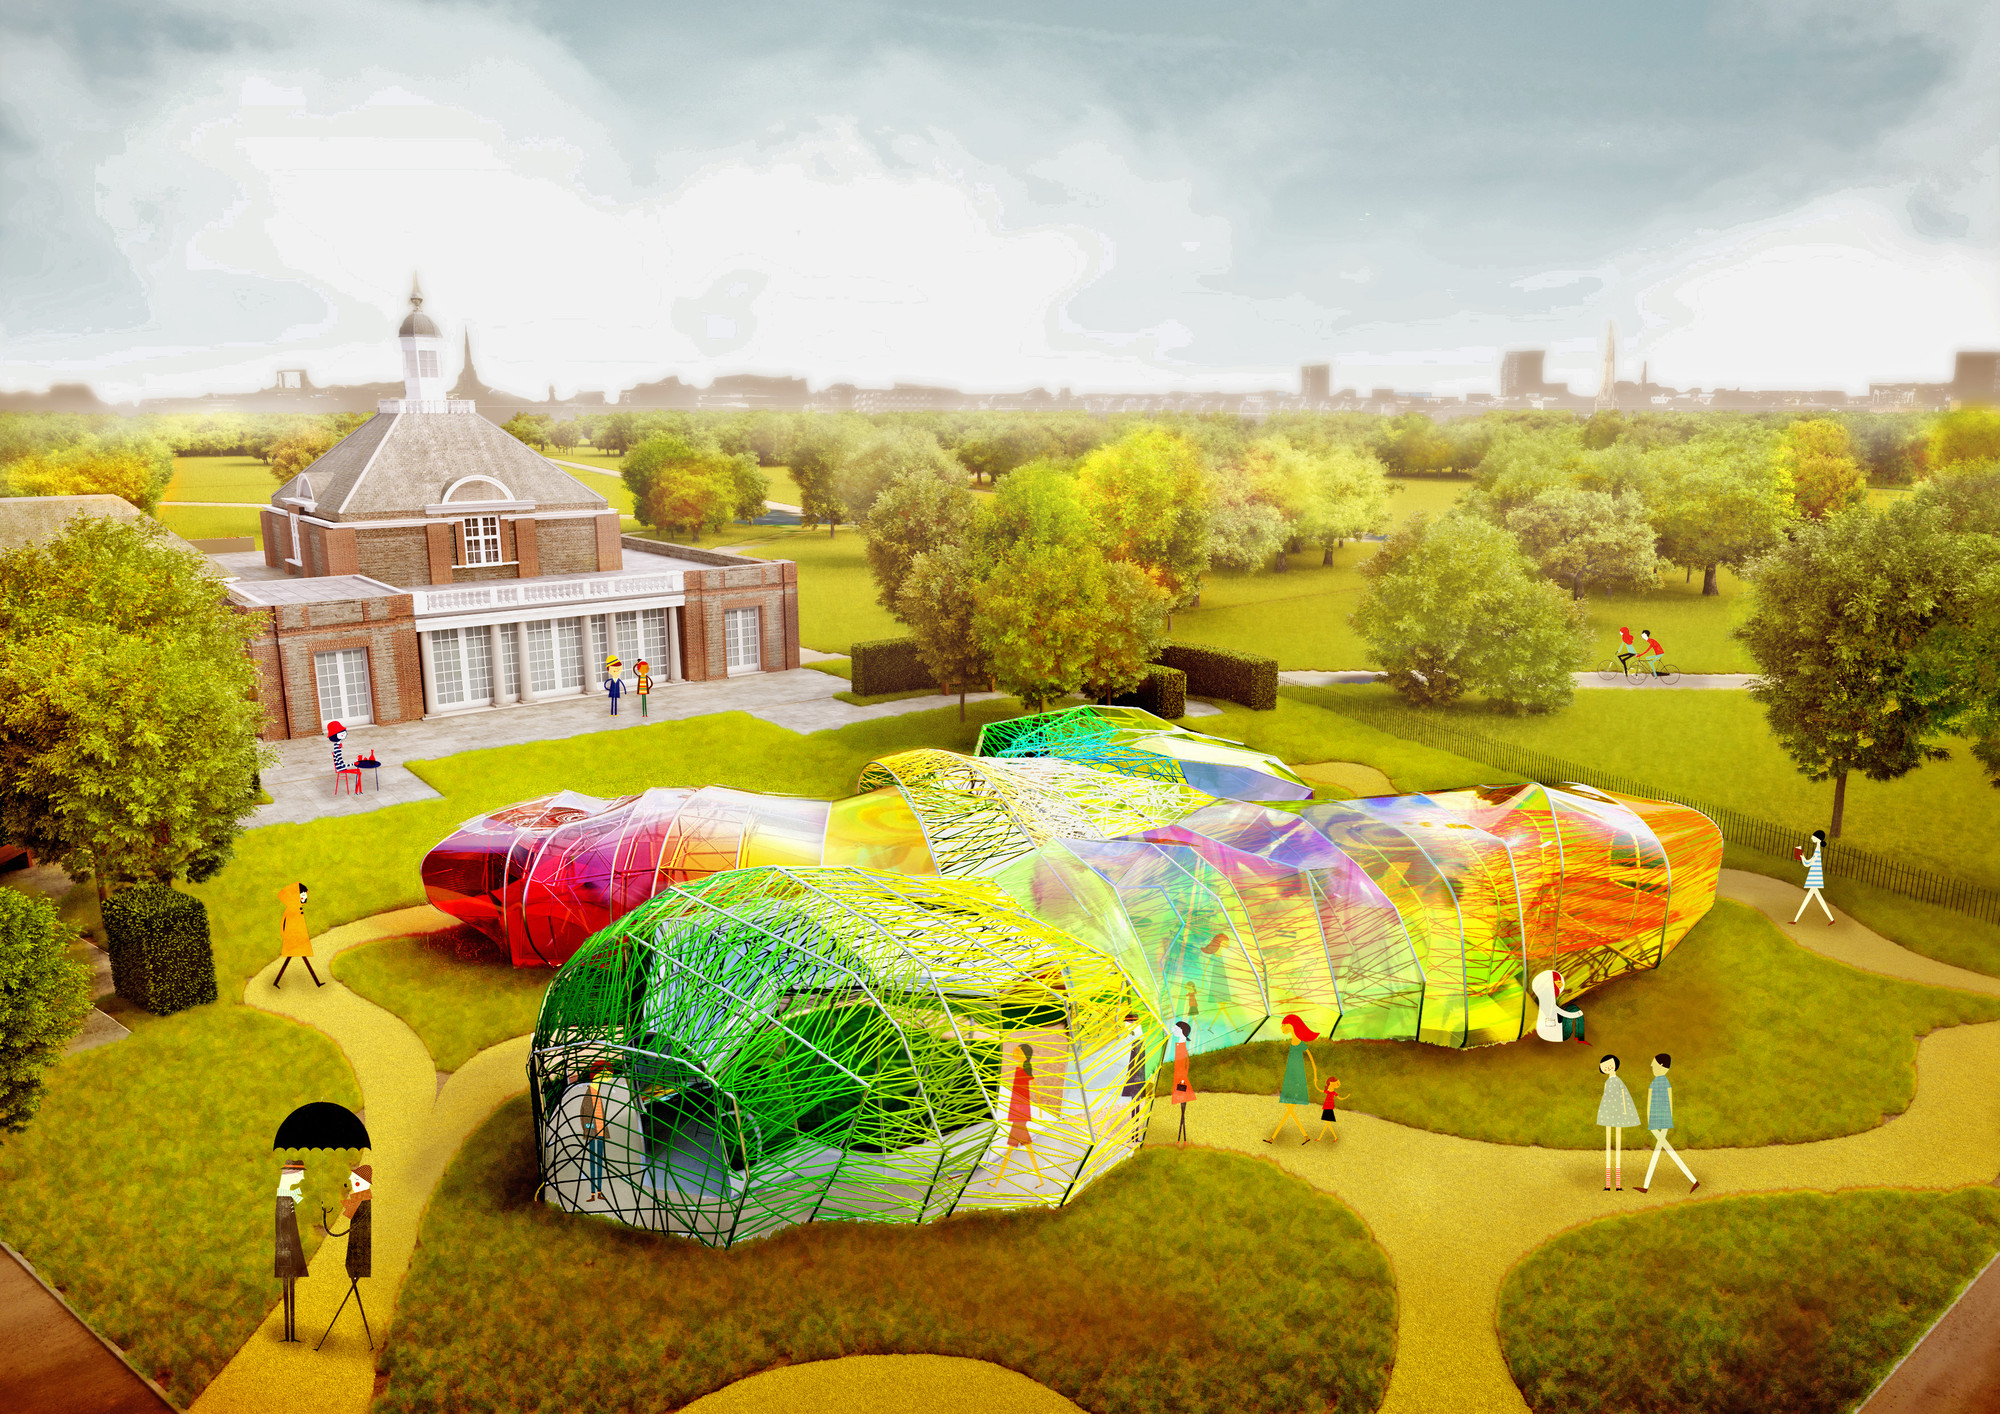 Serpentine Gallery Reveals SelgasCano's Colorful Design for 2015 Pavilion, Serpentine Pavilion designed by SelgasCano 2015, day view. Image © Steven Kevin Howson / SelgasCano